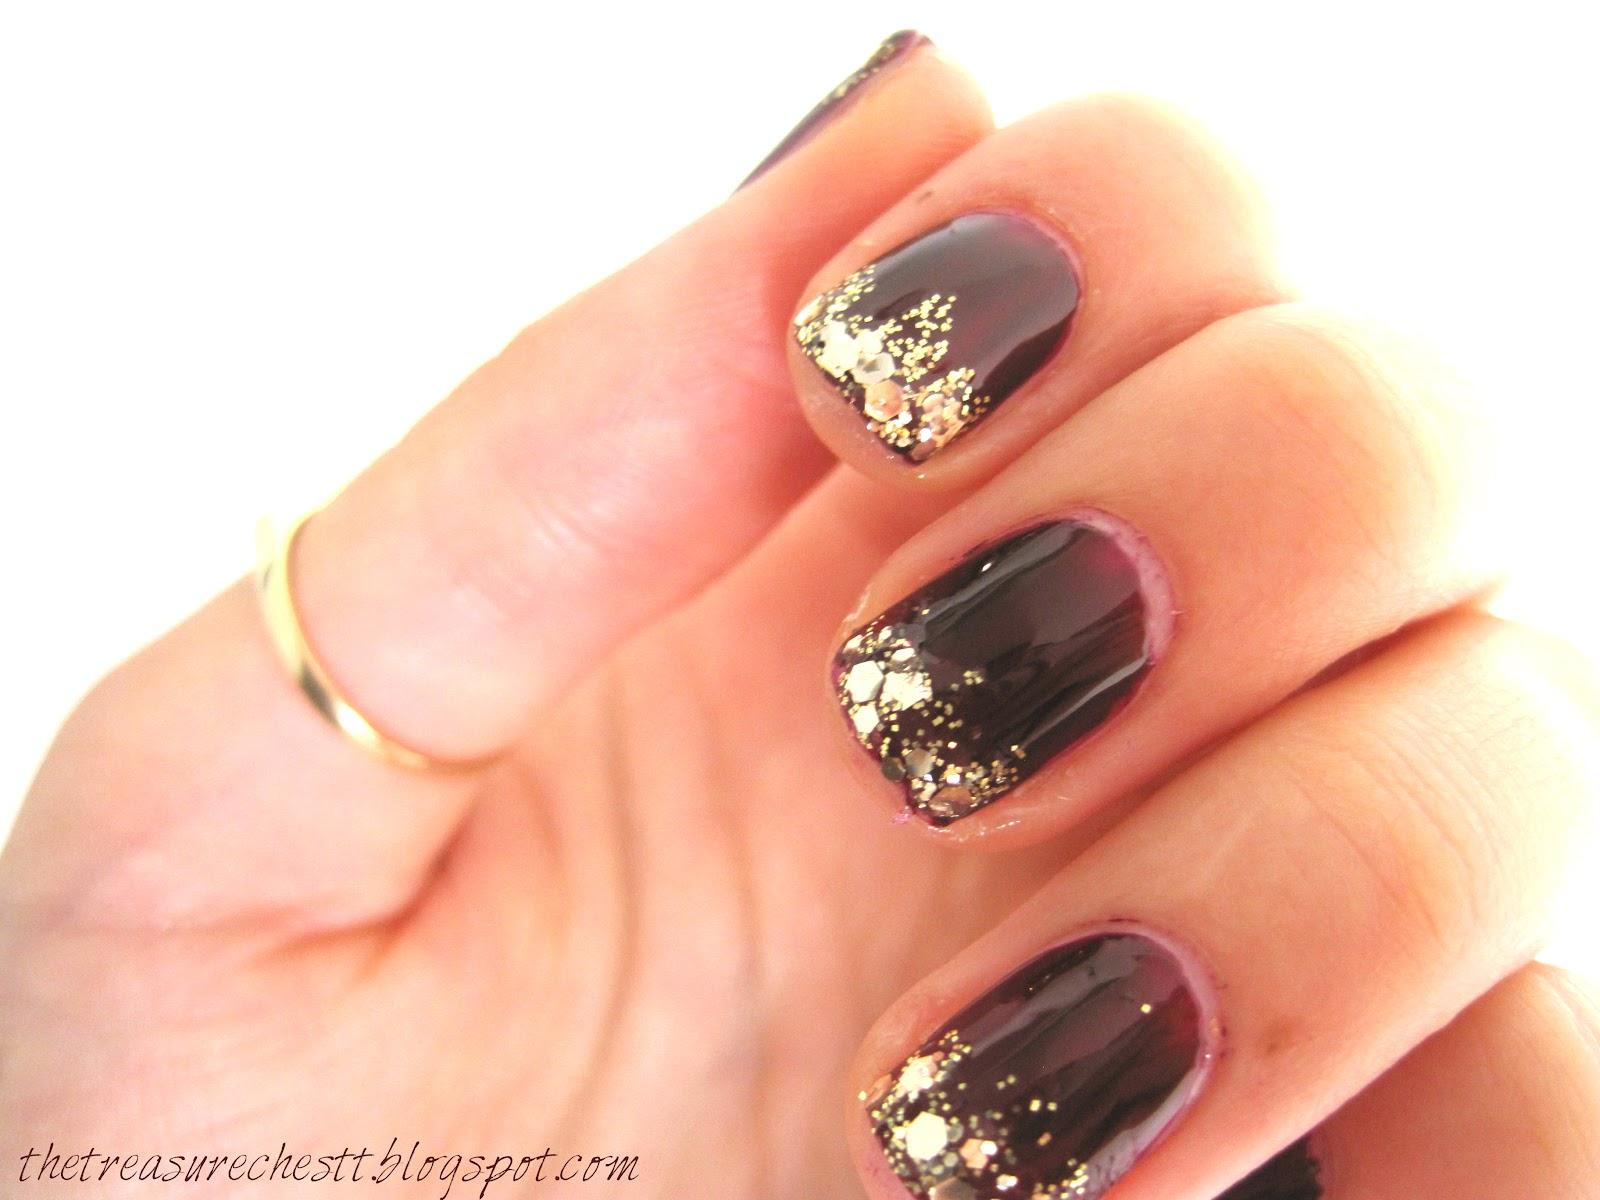 Nails Switc: Round Acrylic Nails